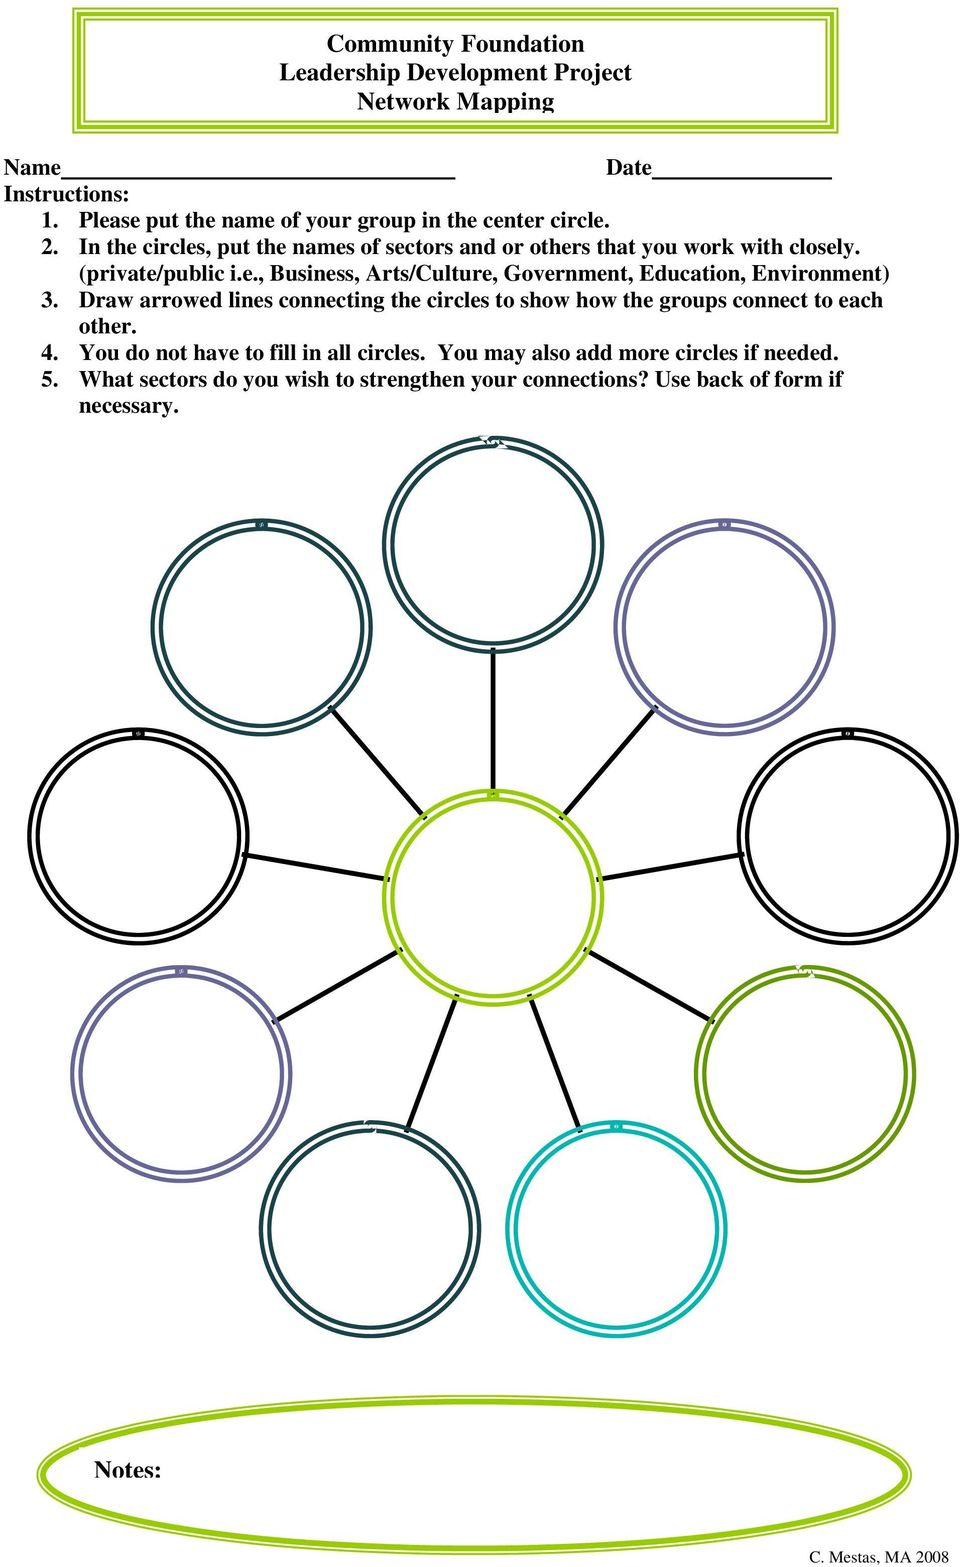 Draw arrowed lines connecting the circles to show how the groups connect to each other. 4. You do not have to fill in all circles.